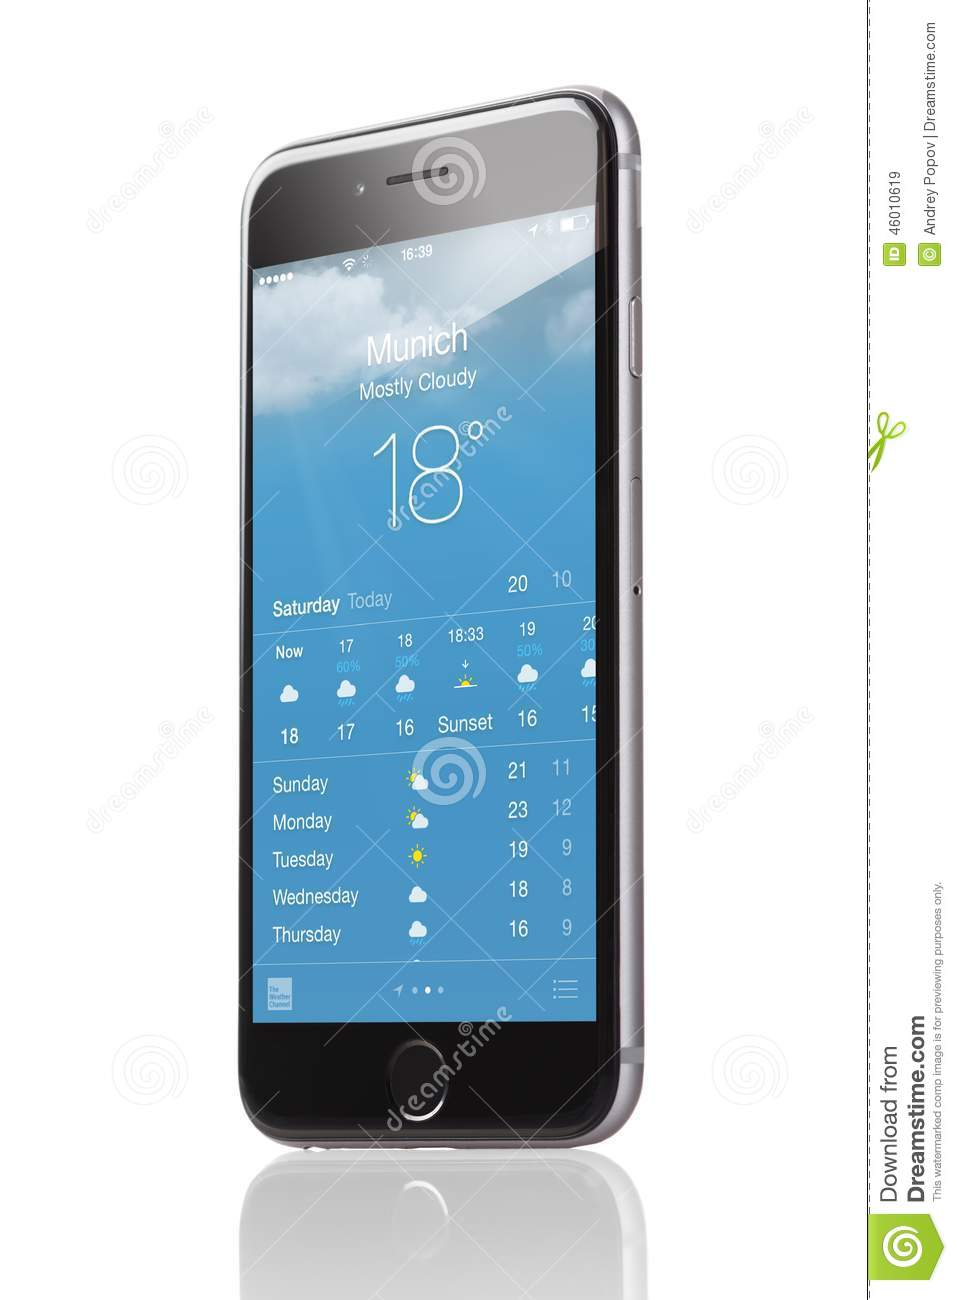 apple iphone 6 with application of weather forecast. Black Bedroom Furniture Sets. Home Design Ideas